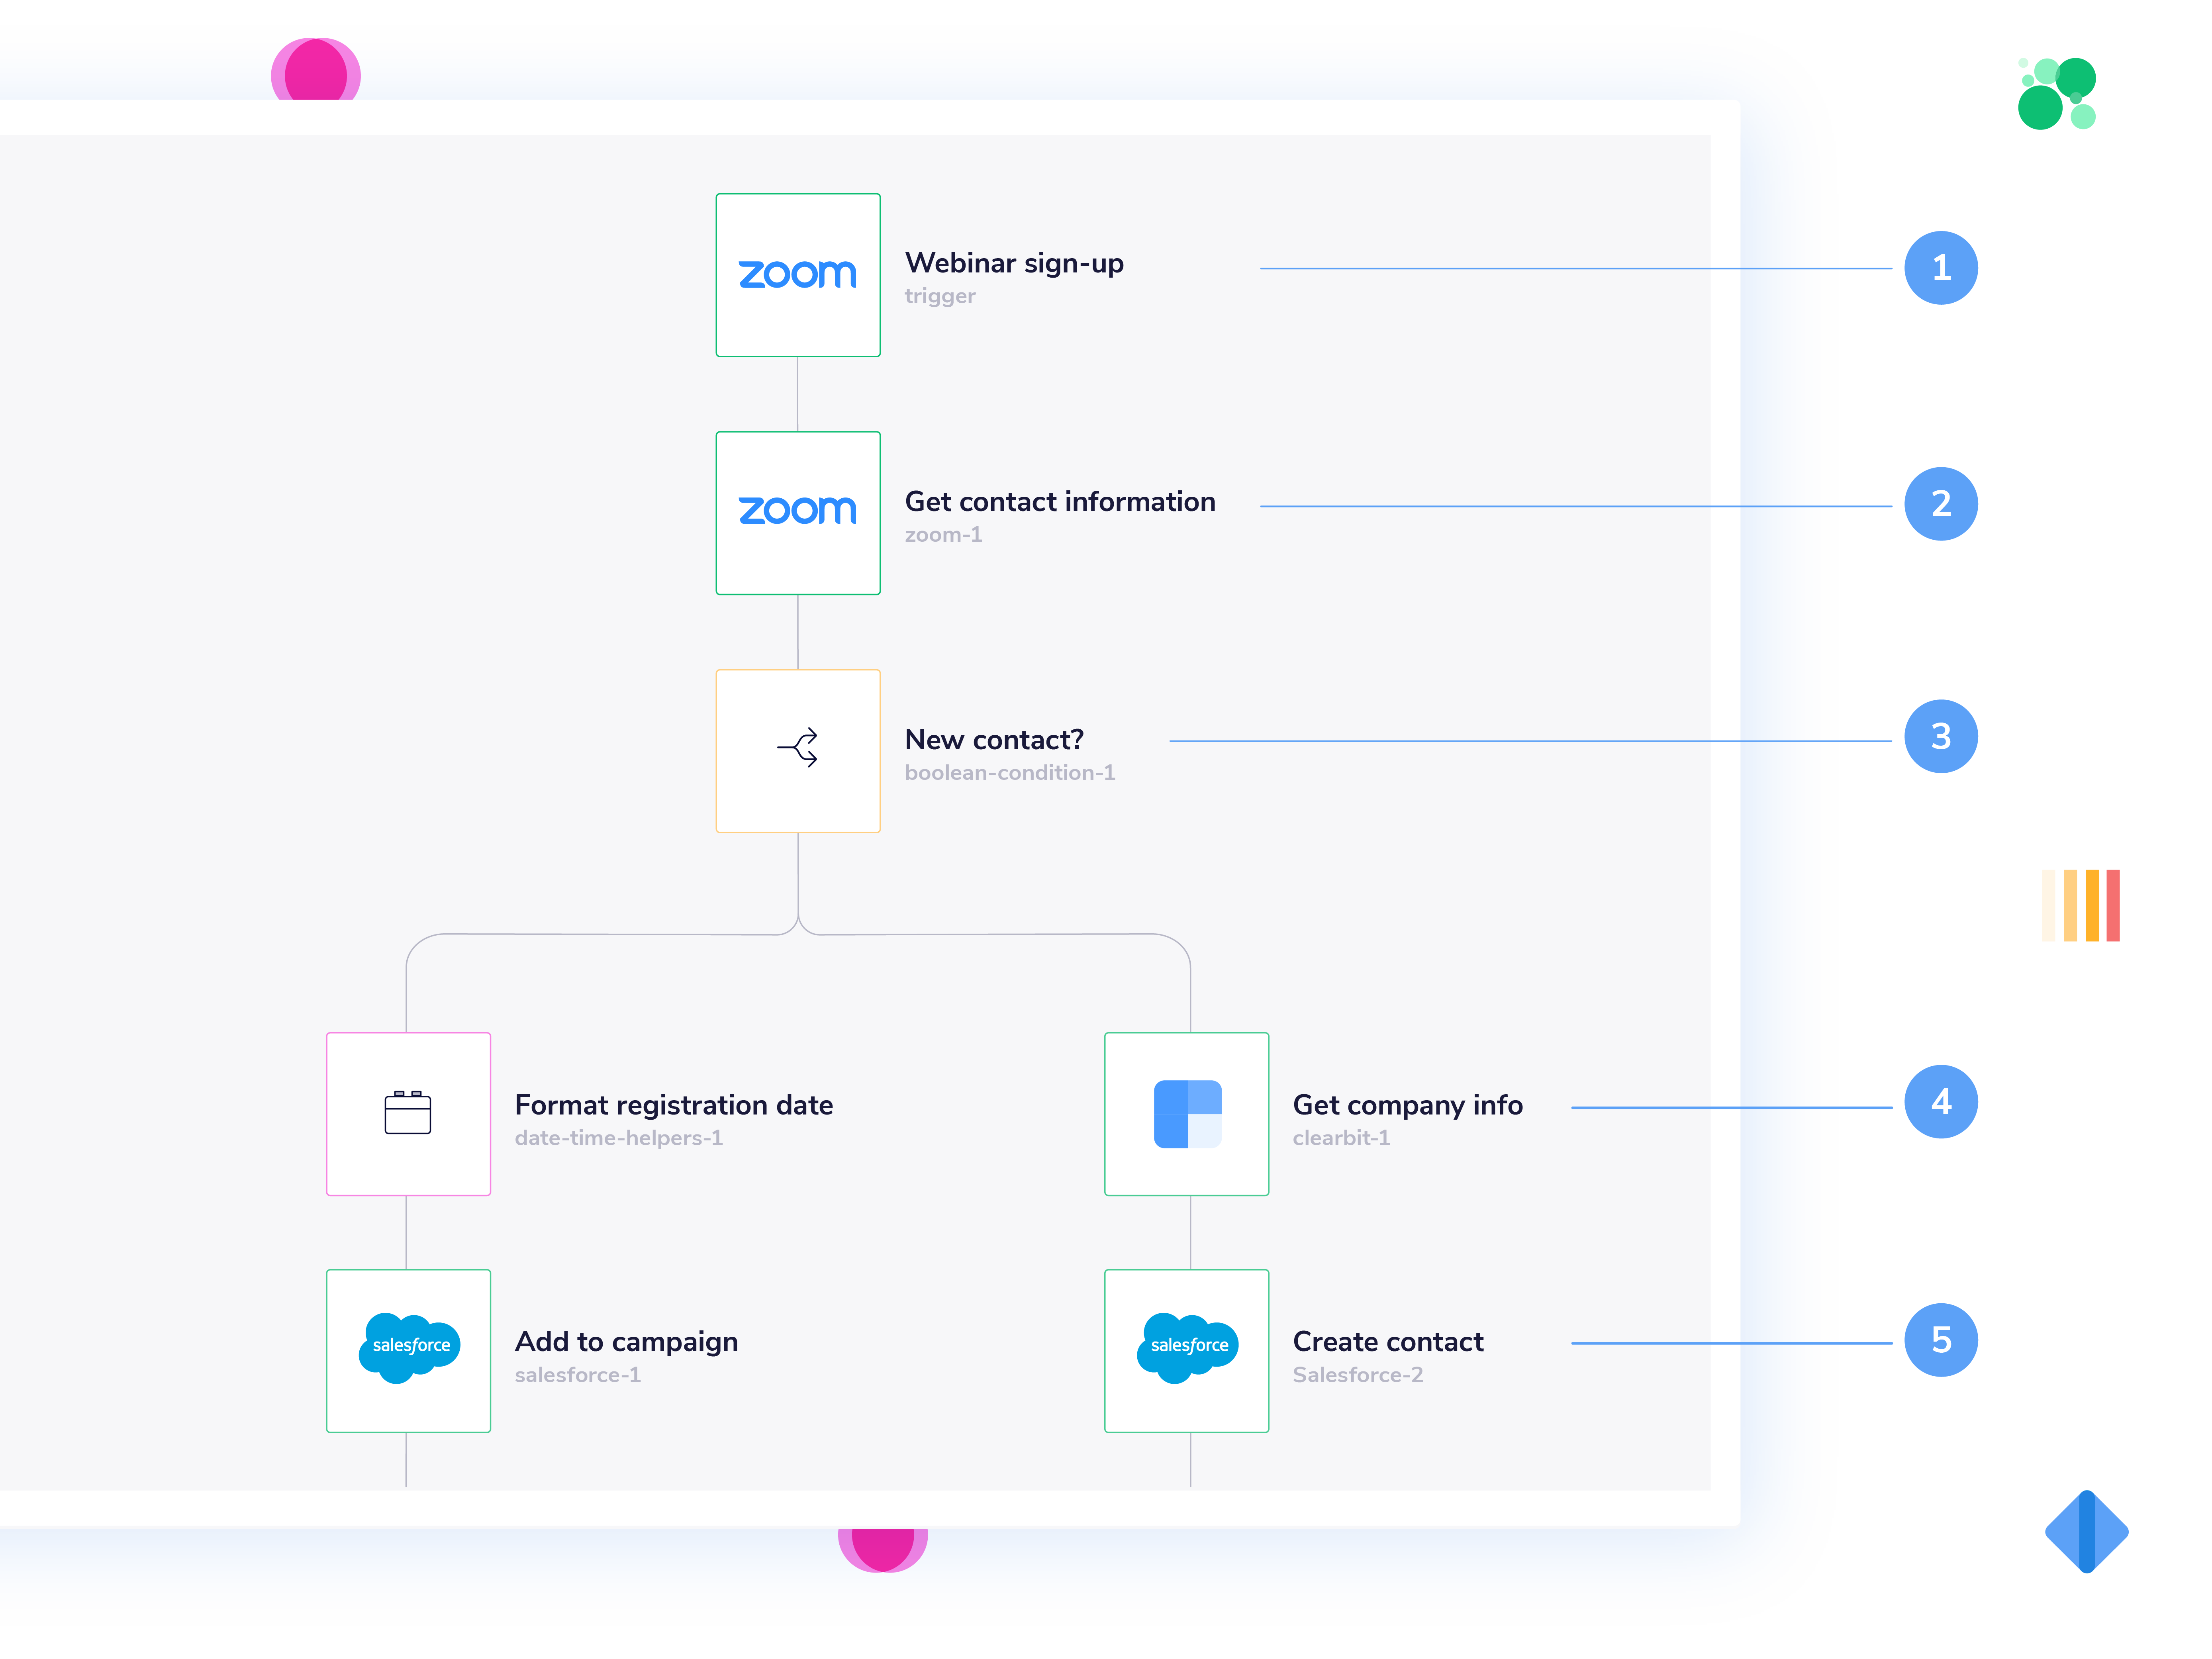 Step by step guide on creating a workflow on the Tray Platform